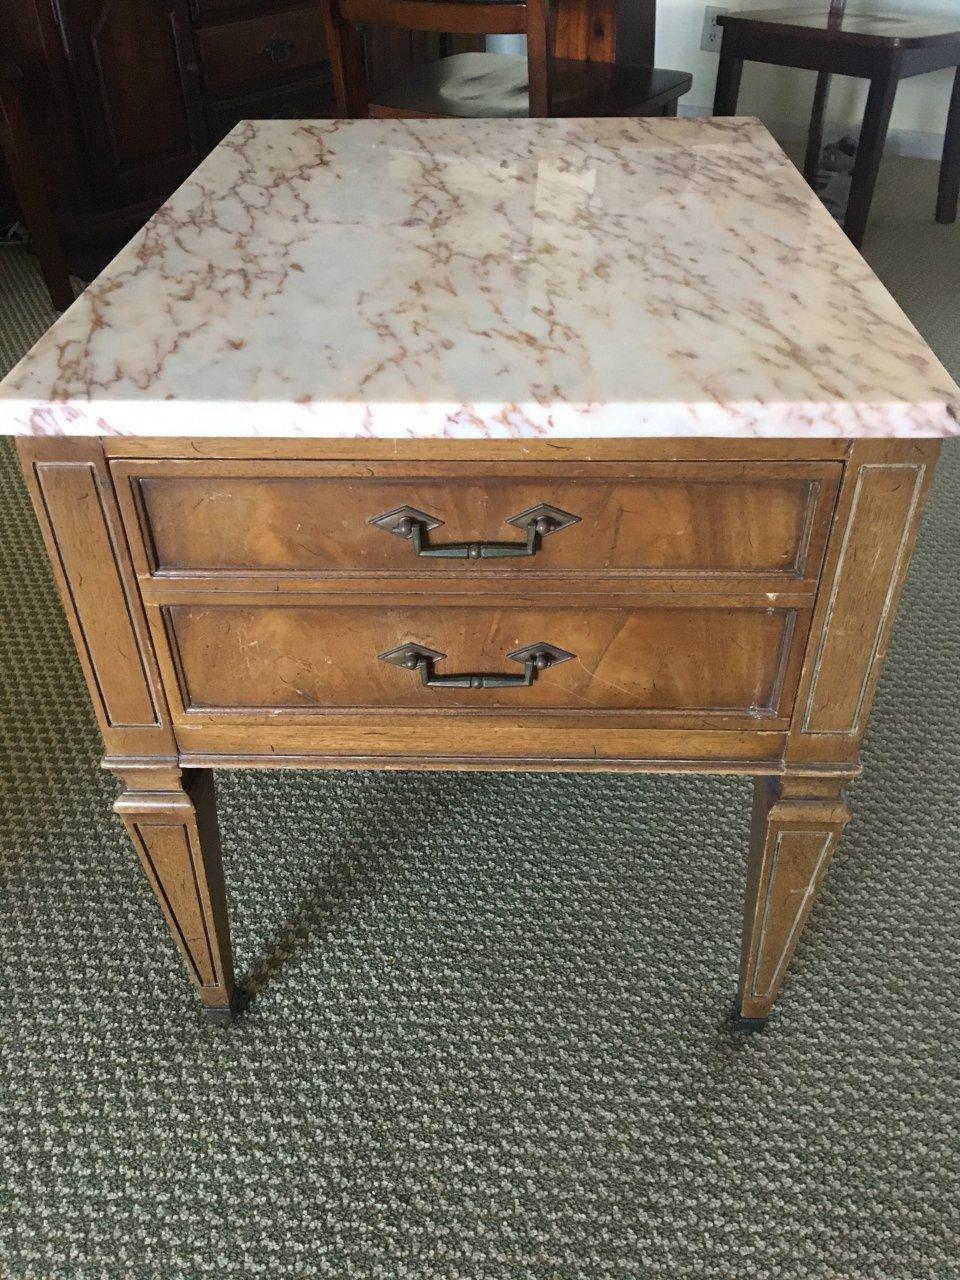 How Much Are These Weiman End Tables Worth My Antique Furniture